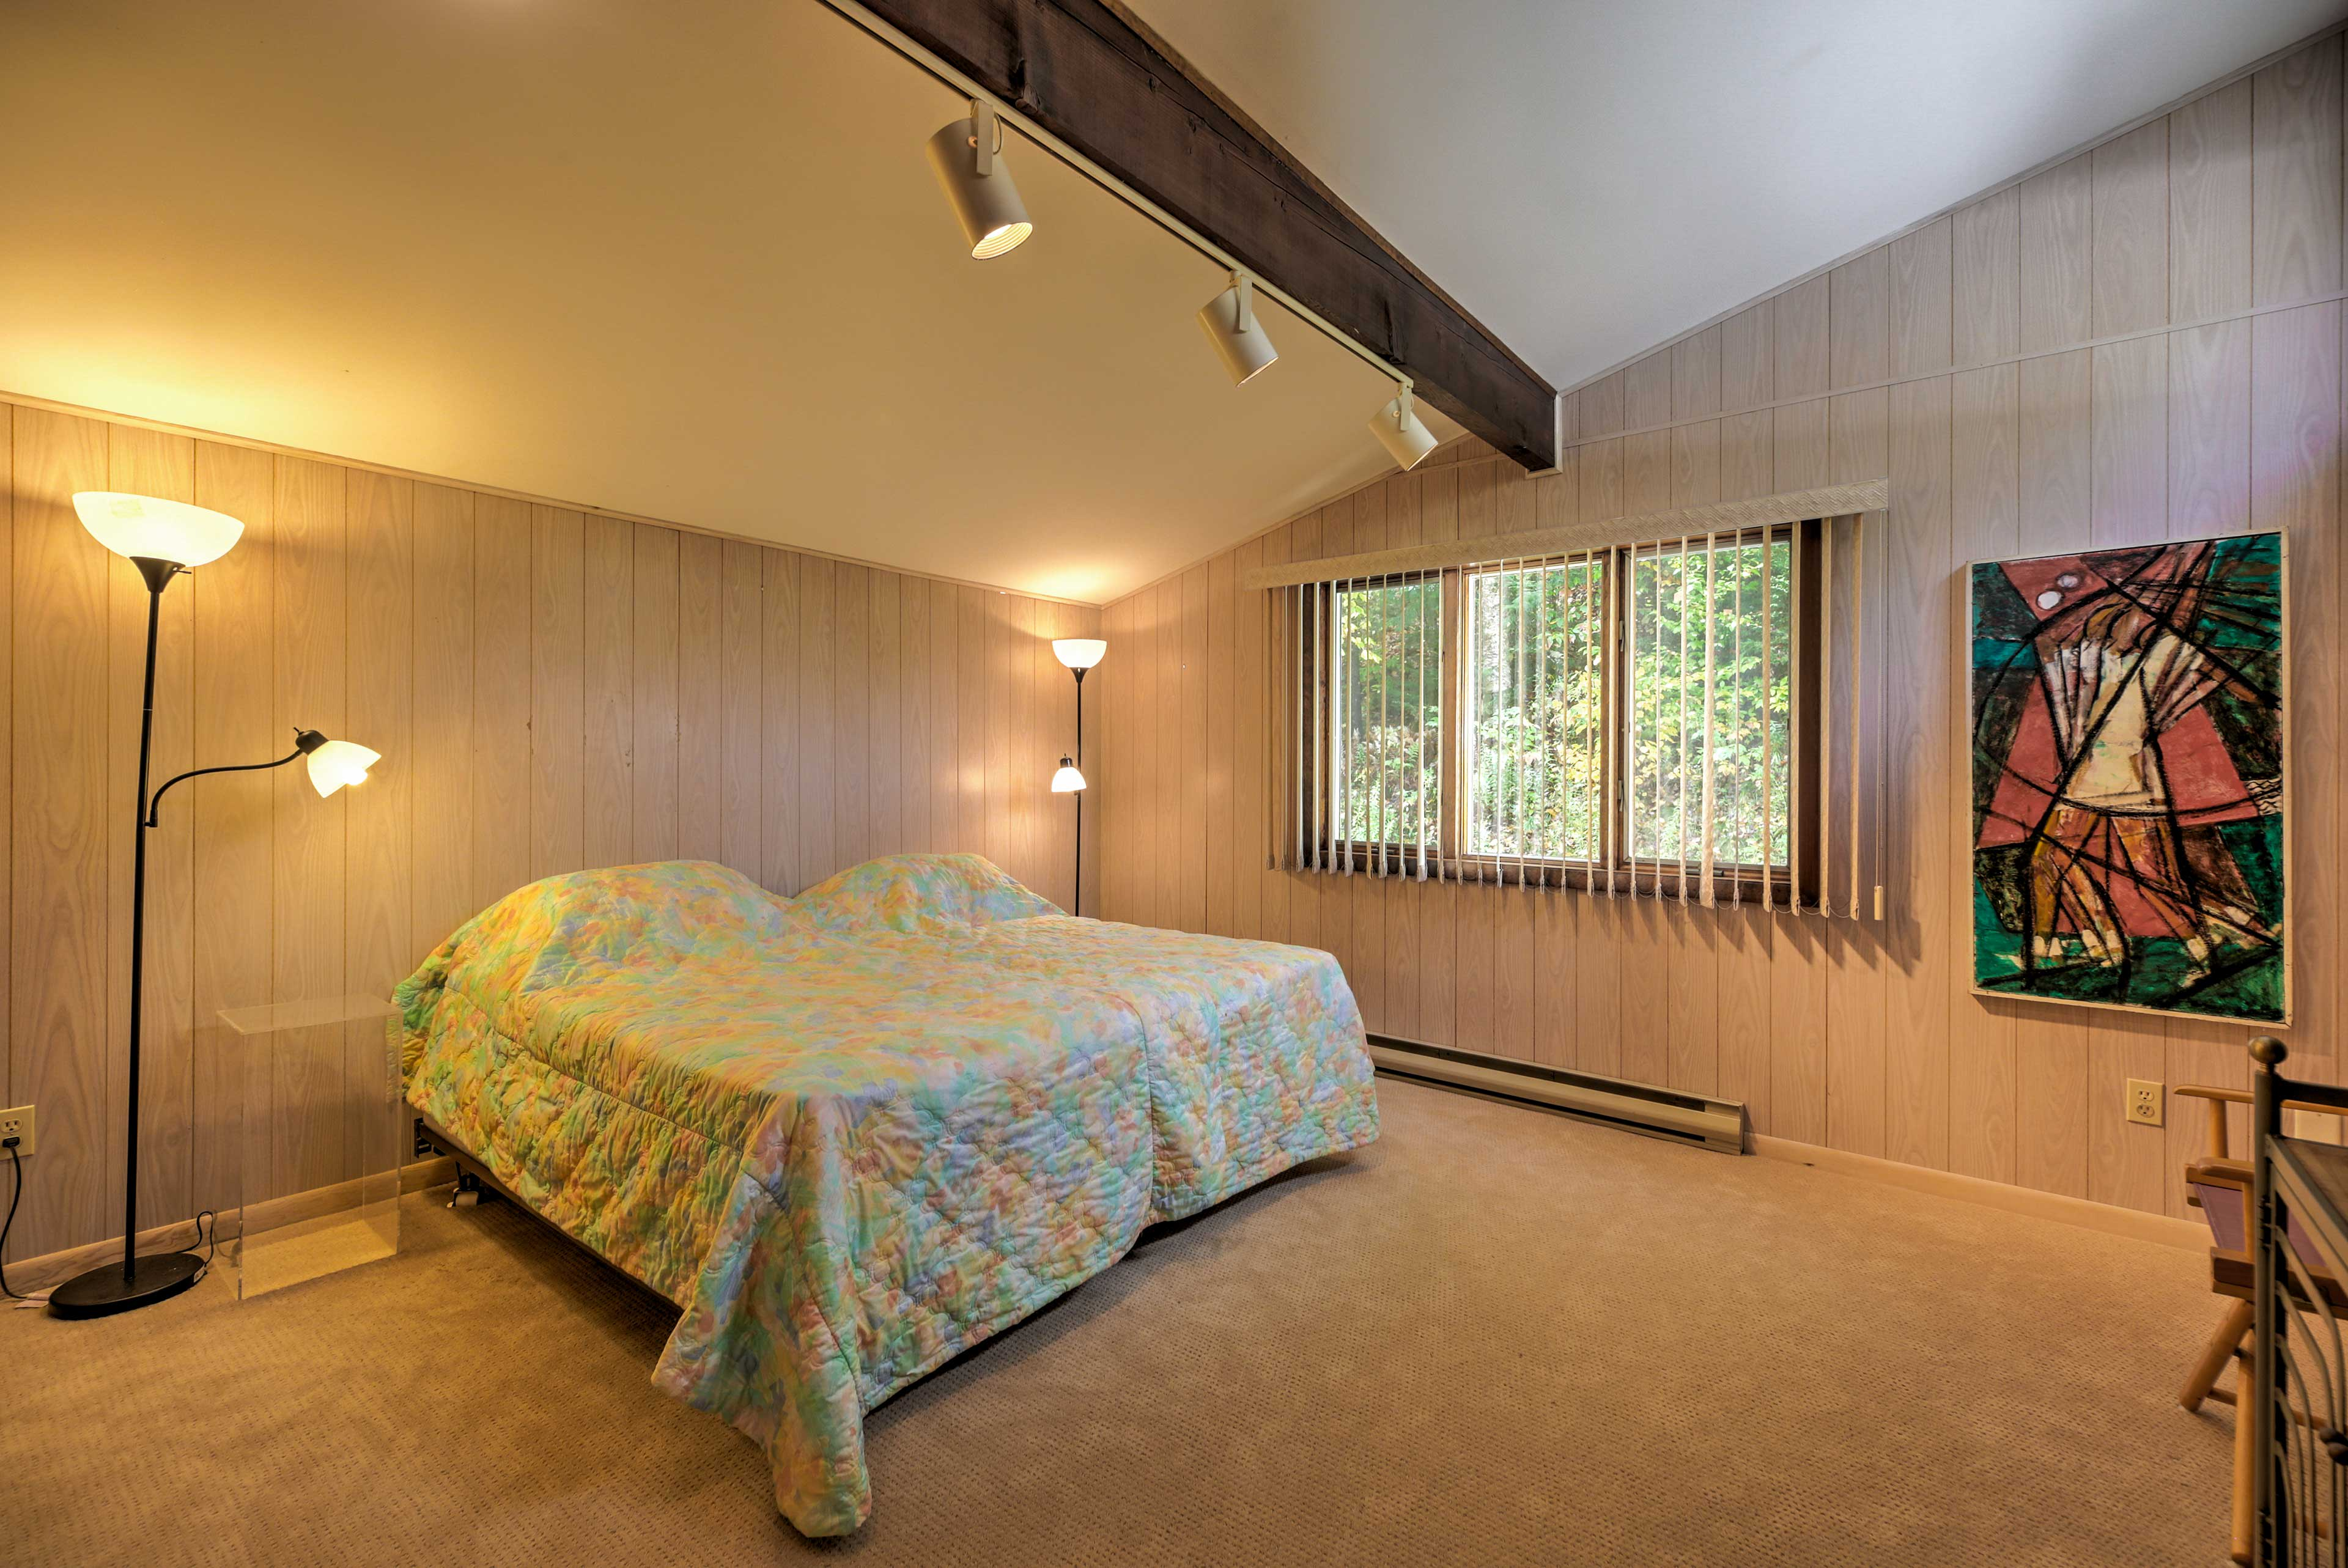 This bedroom provides 2 twin beds that are arranged to form a king.